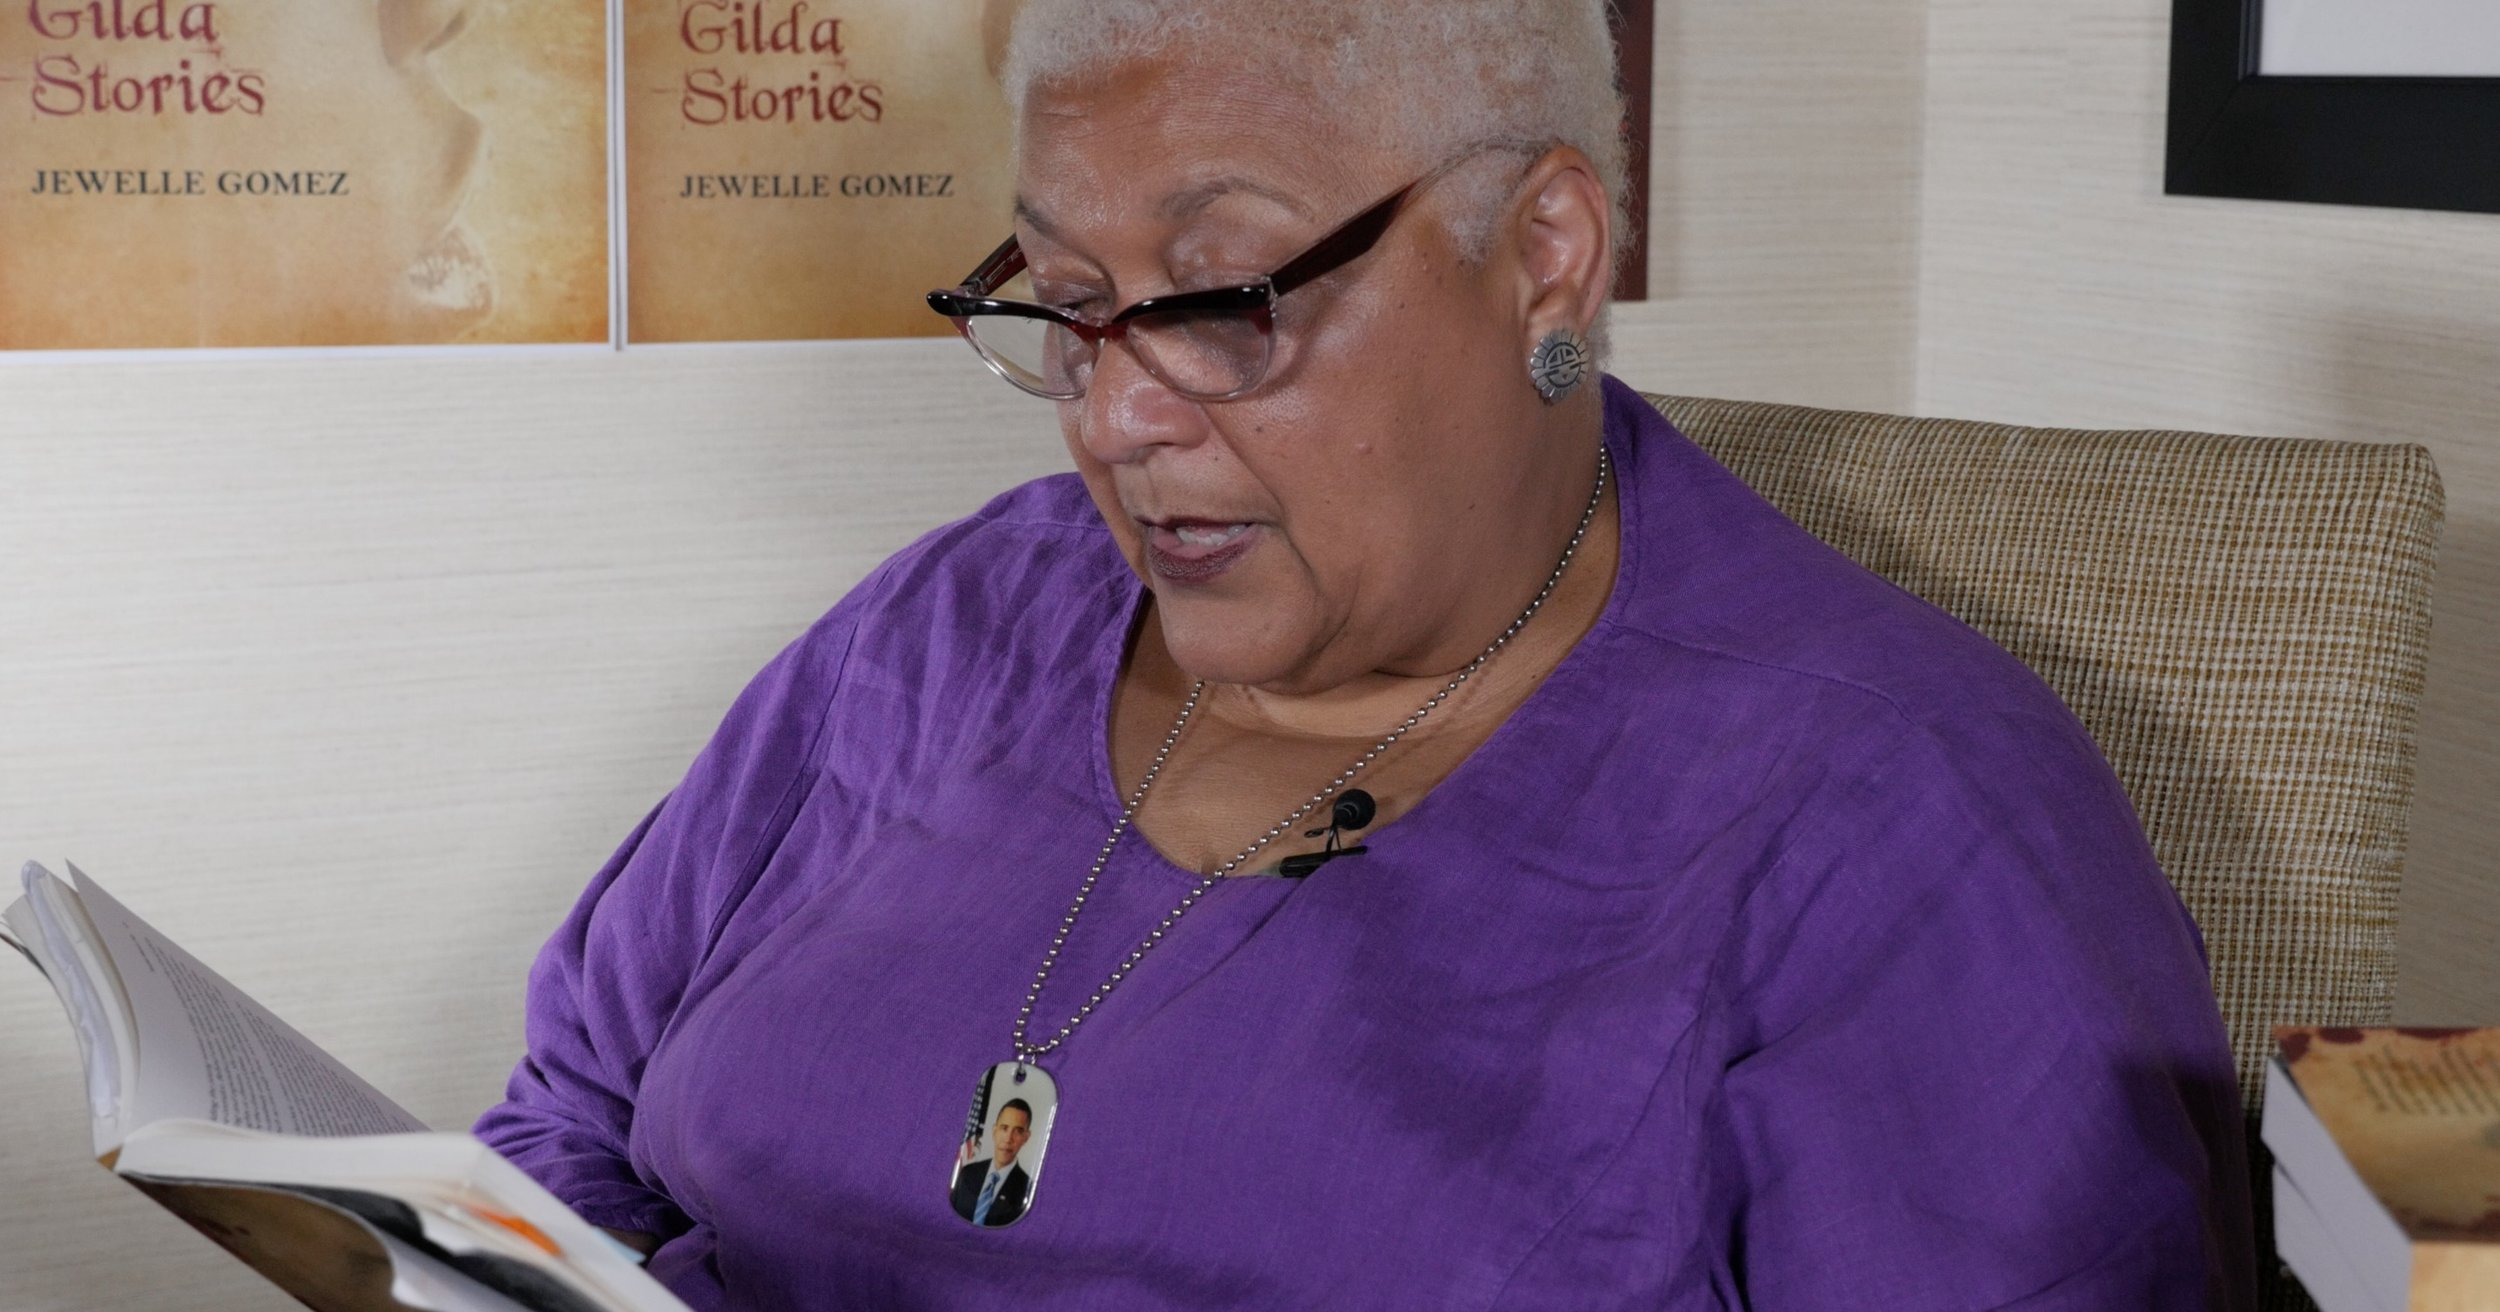 Jewelle Gomez gives us a reading